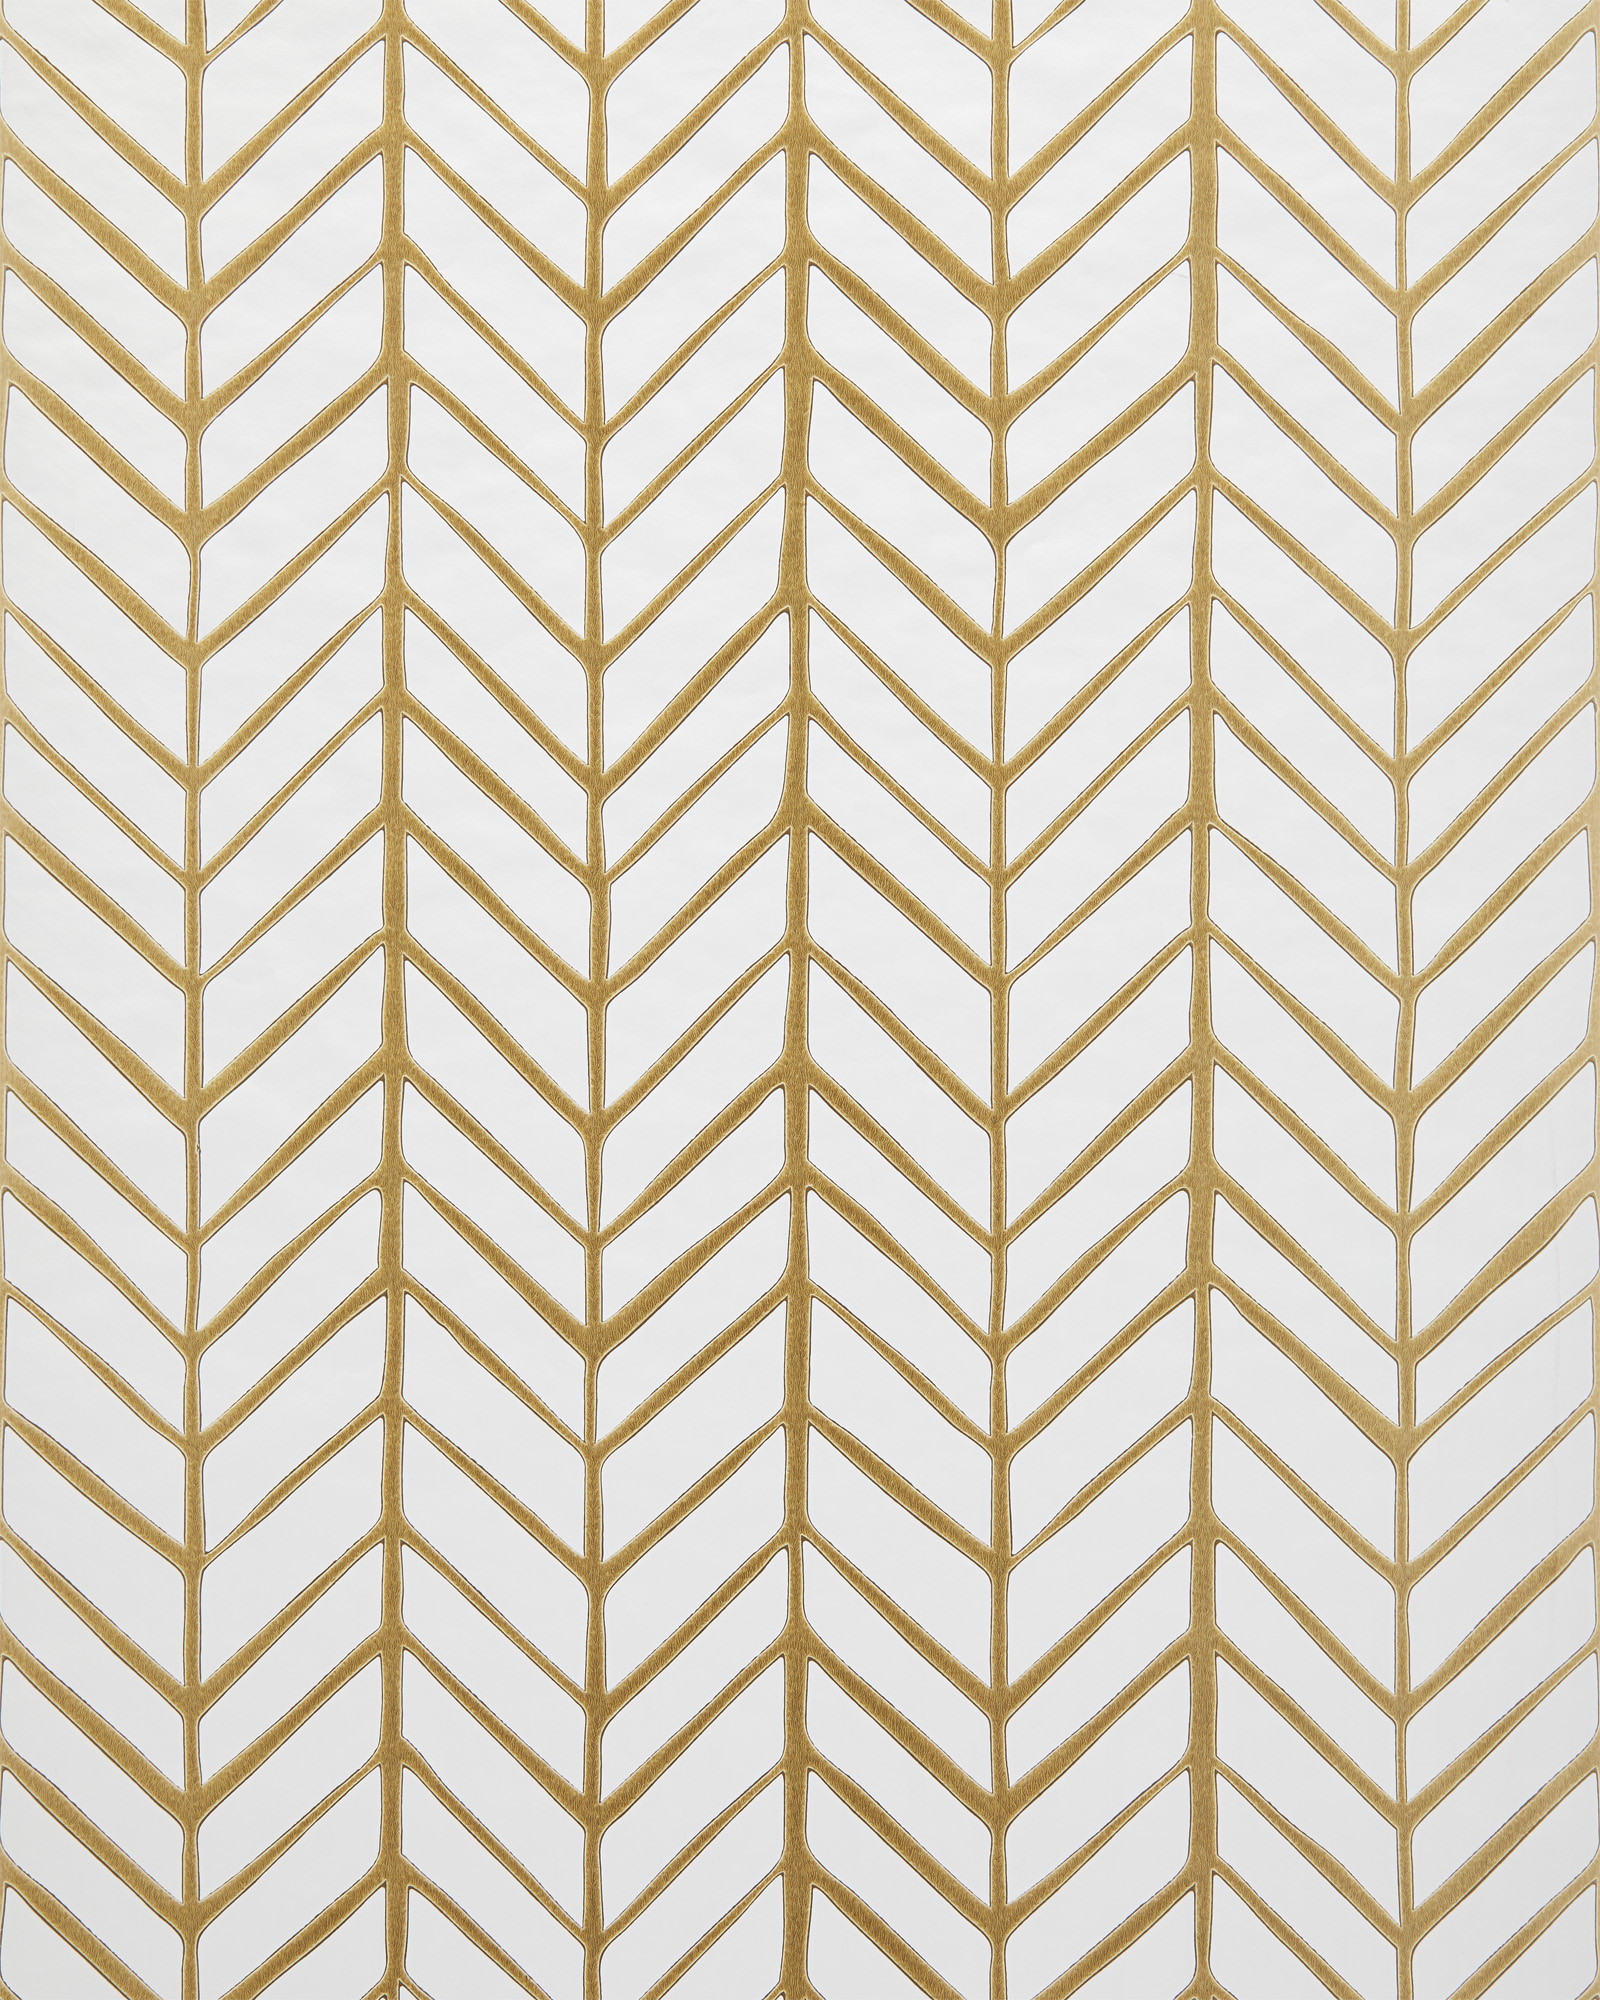 Feather Wallpaper Swatch - Gold,